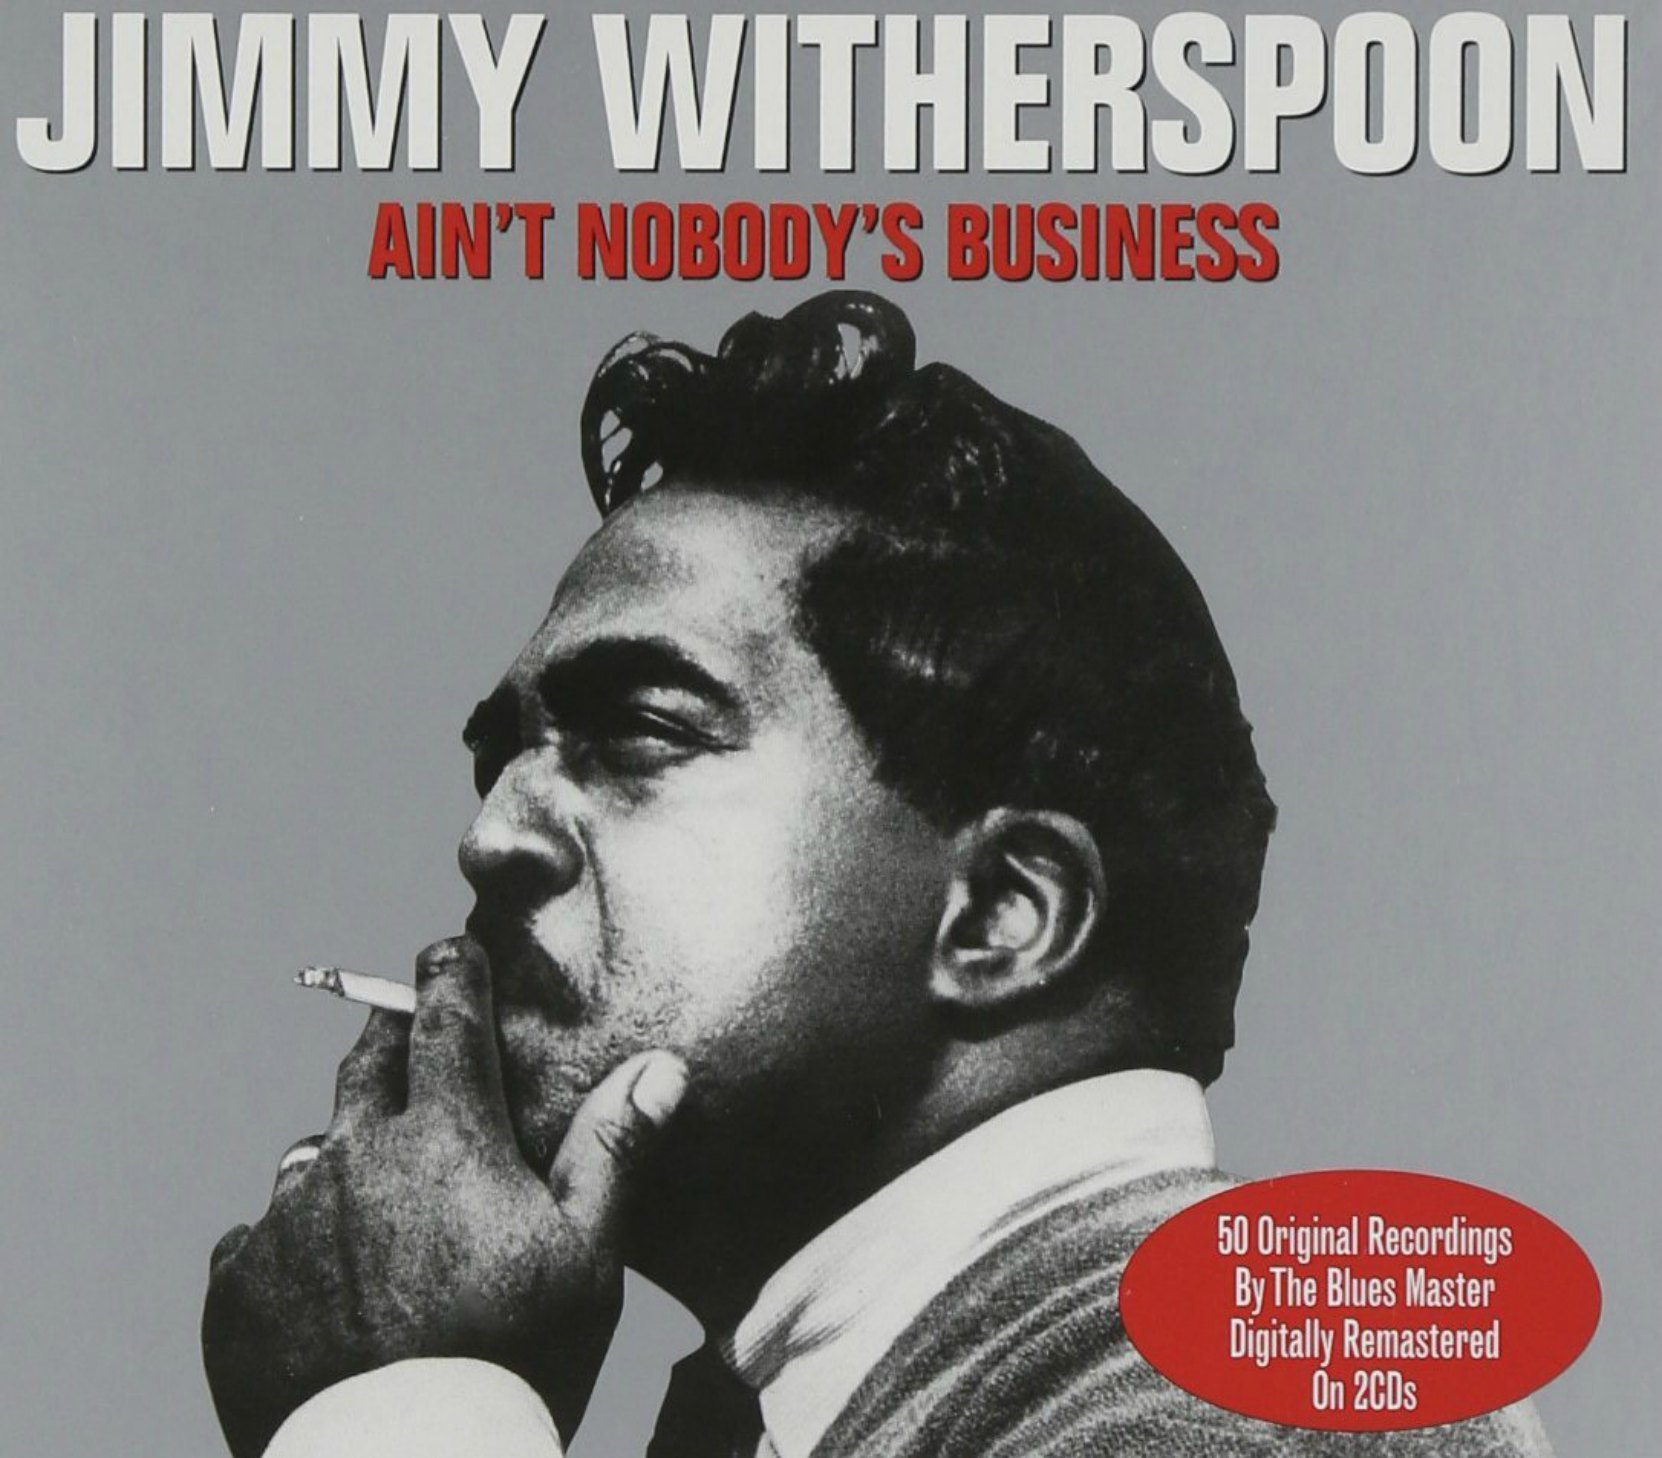 Jimmy Witherspoon - Ain't Nobody's Business, a 2 CD, 5- track collection on the Not Now reissue label- album cover